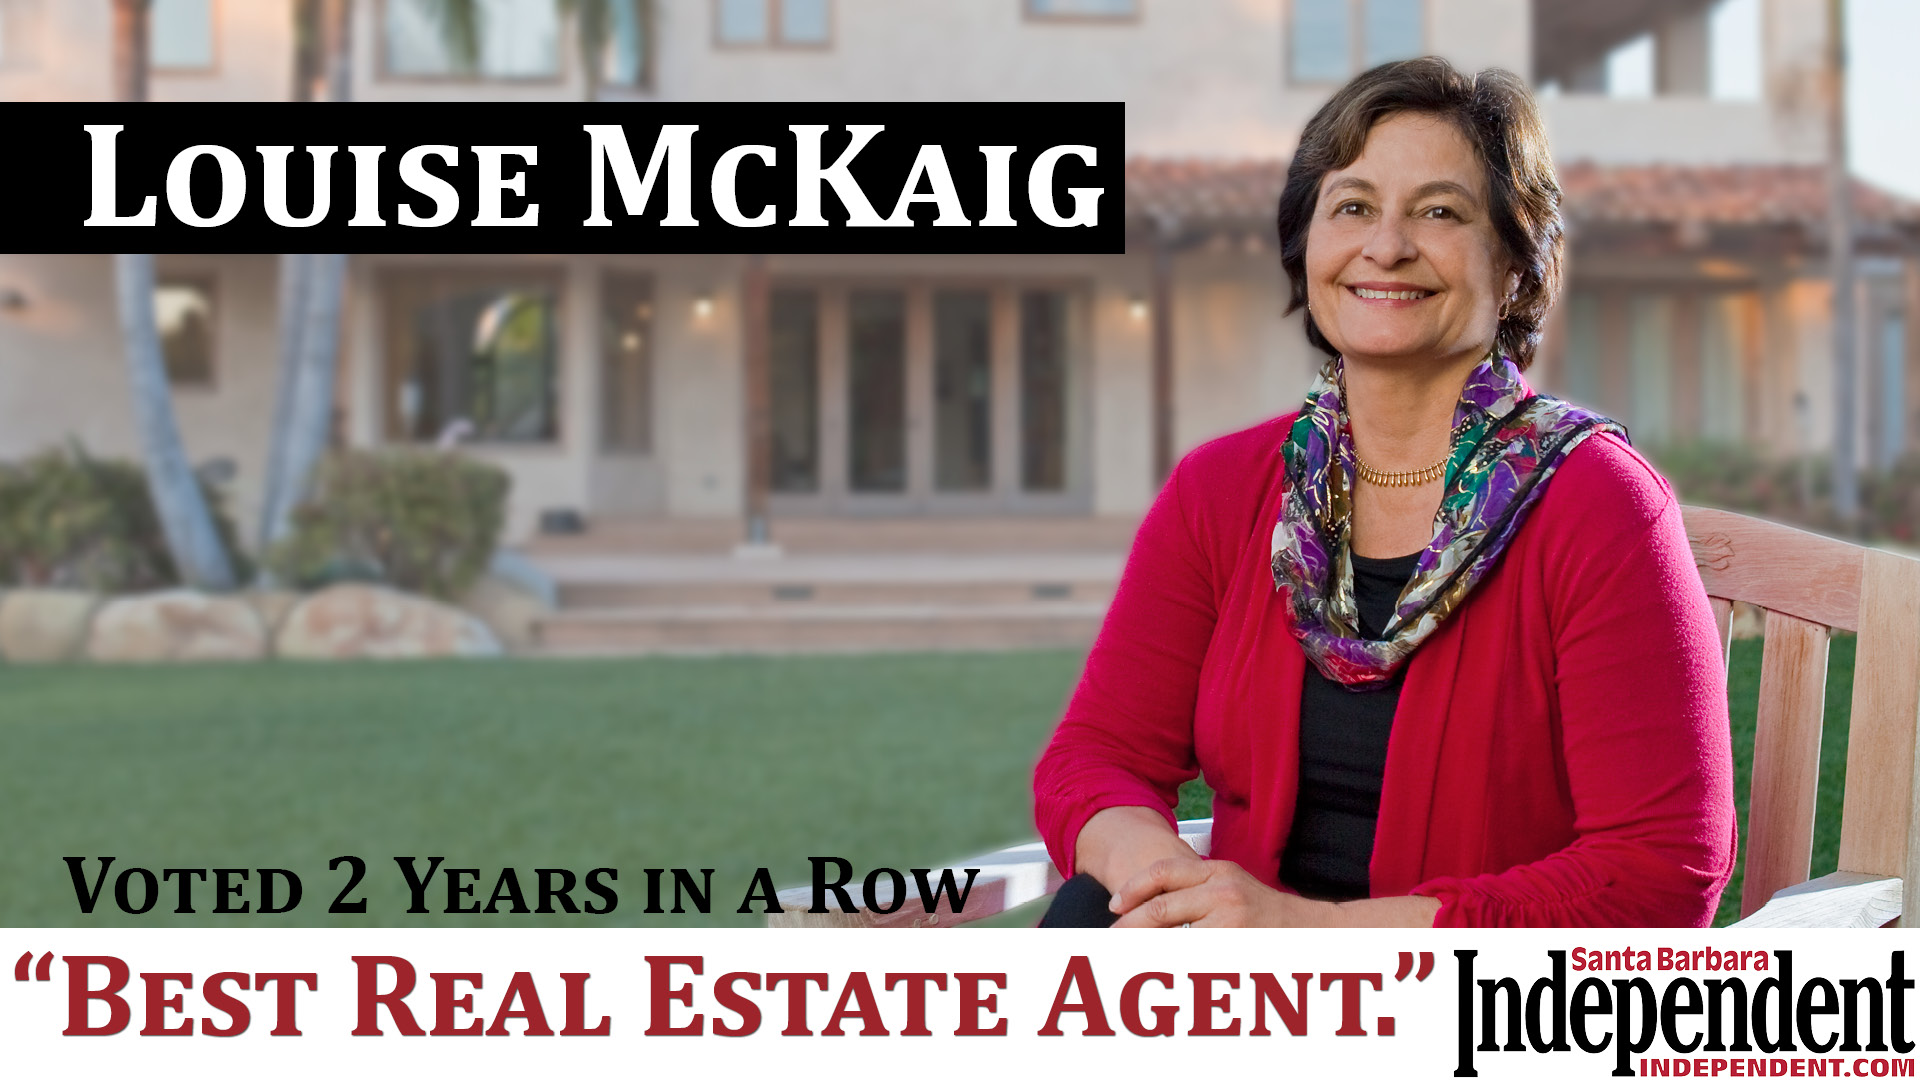 Best real estate agent, best real estate broker, best real estate company, Louise Mckaig, village properties